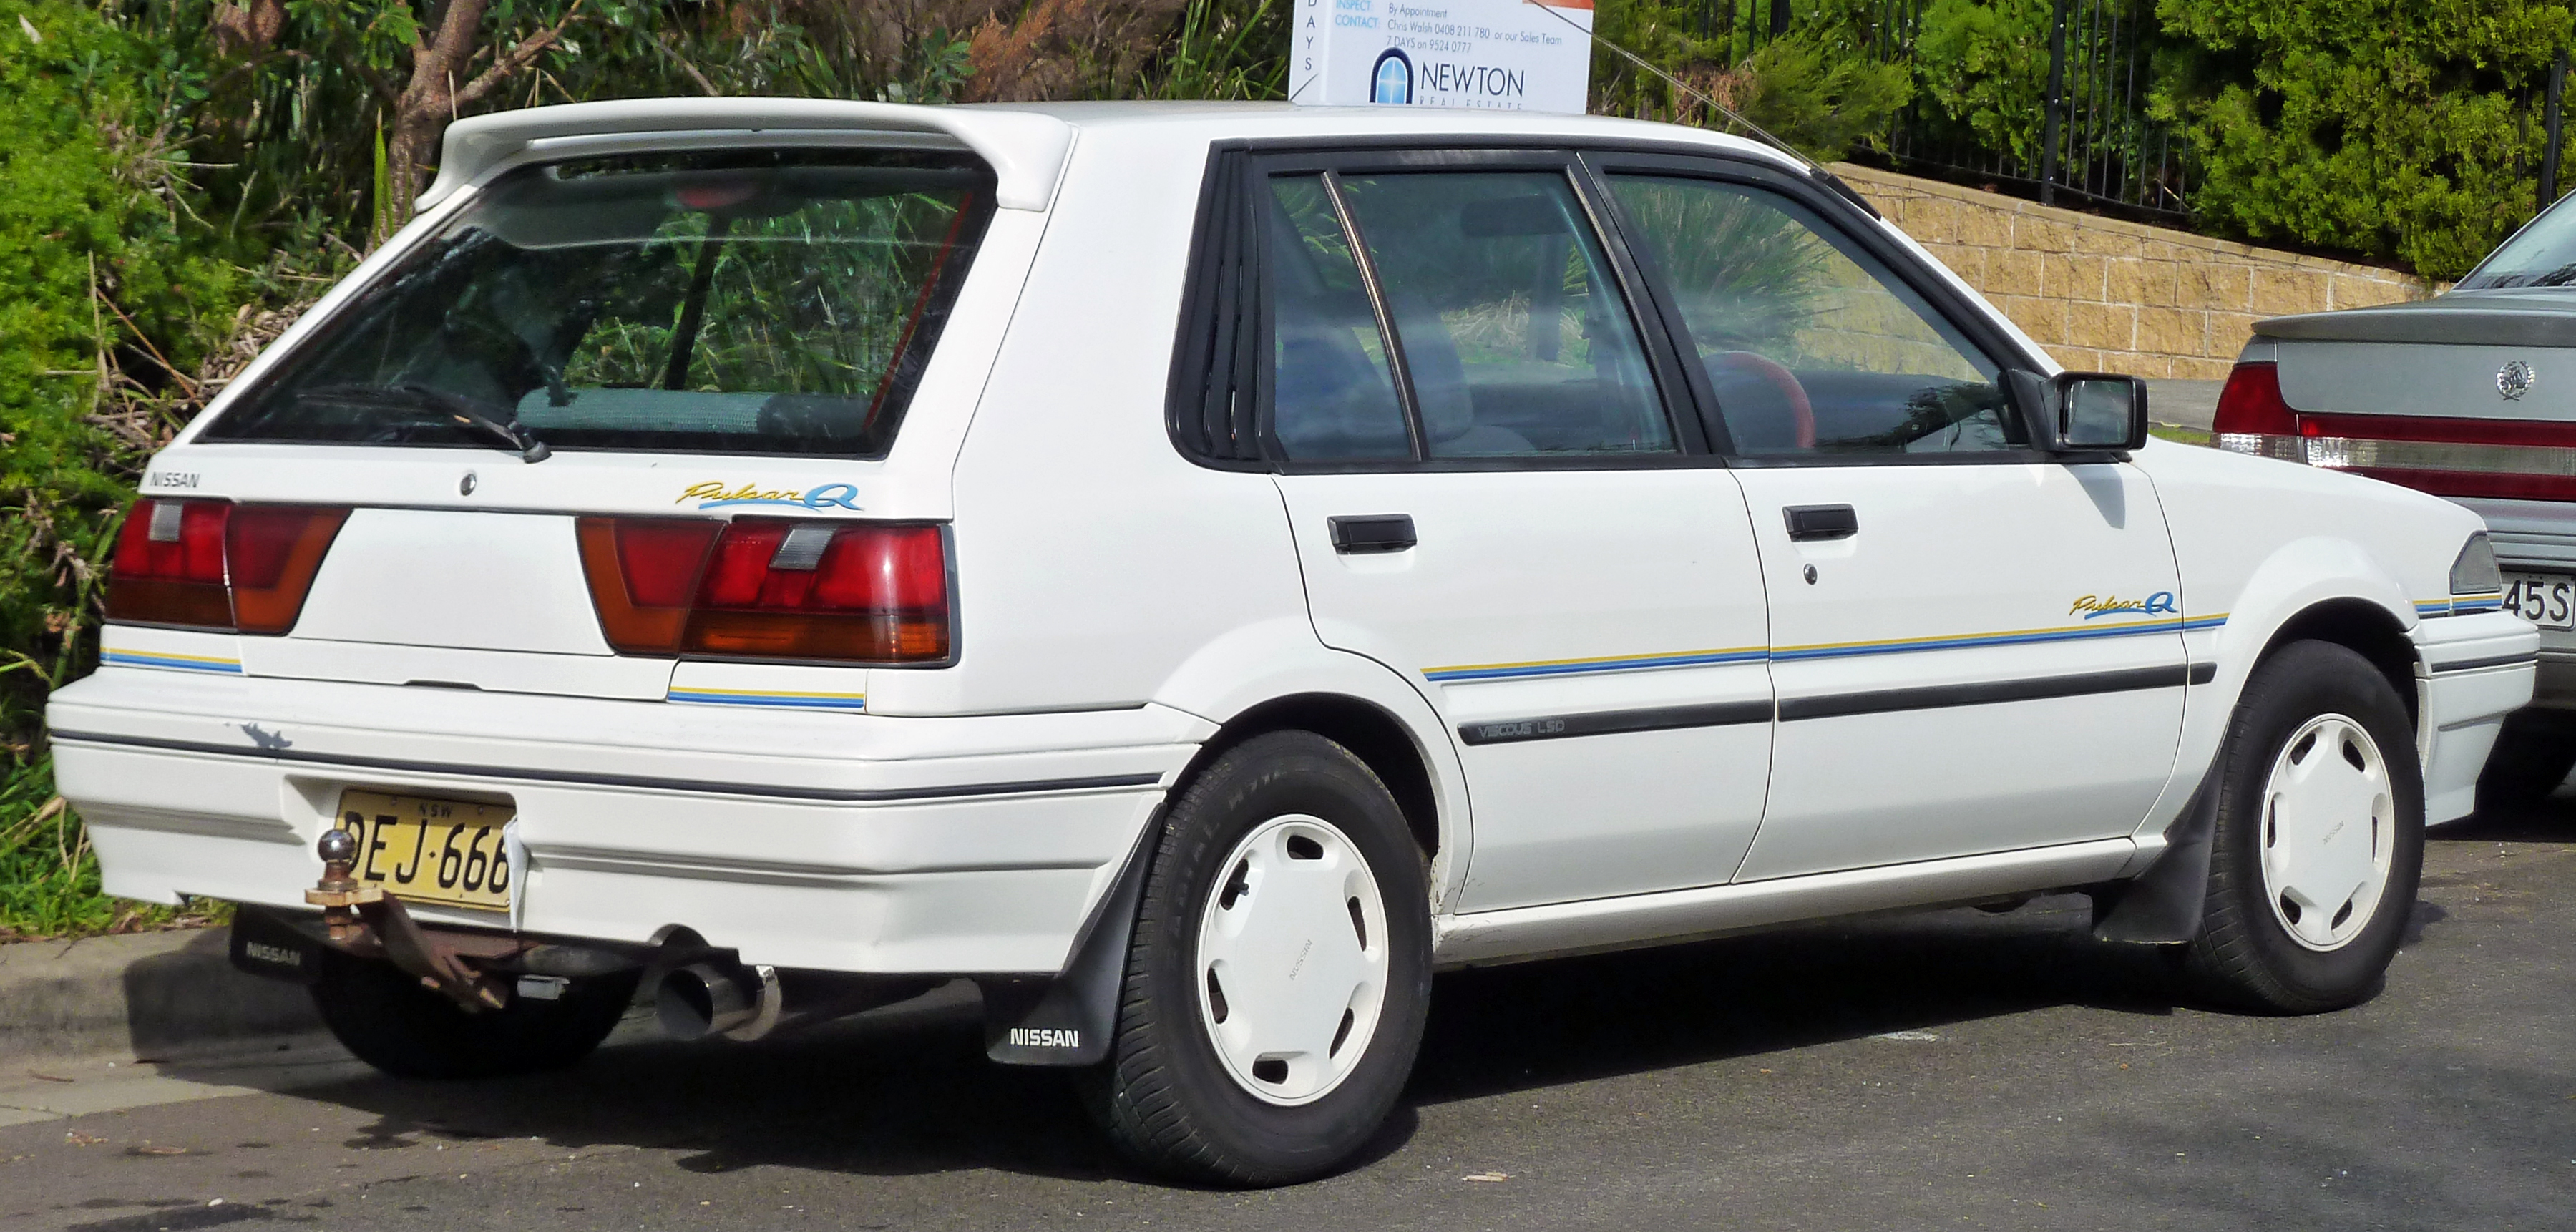 File 1989 1991 nissan pulsar n13 s2 q 5 door hatchback 04 jpg wikimedia commons